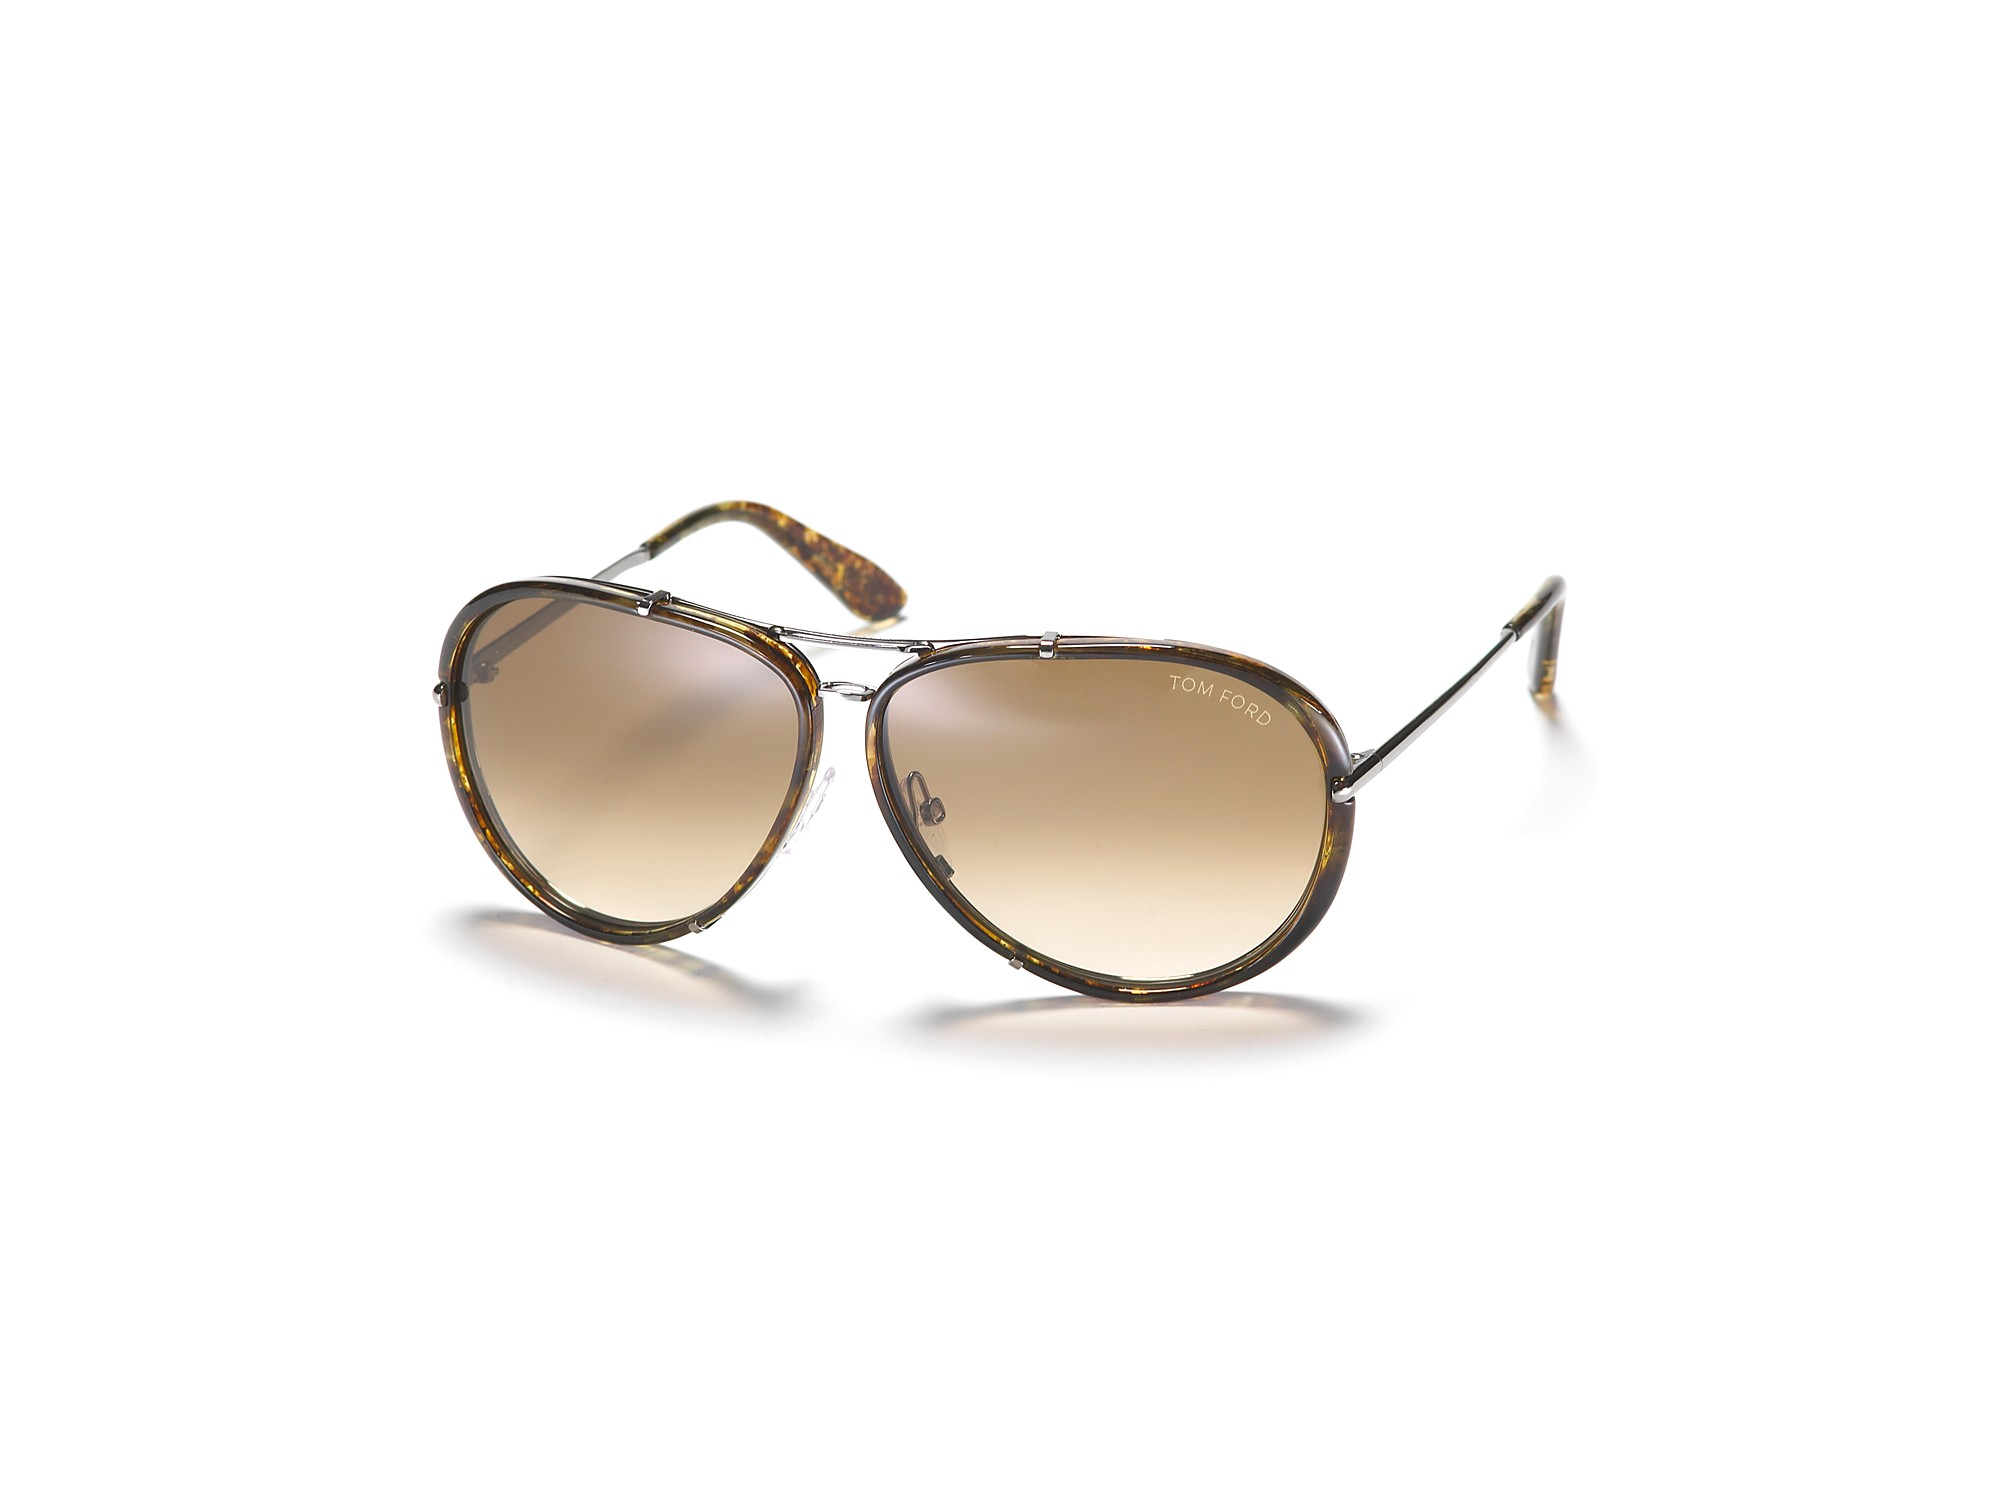 Tom Ford Cyrille Sunglasses In Brown For Men Lyst